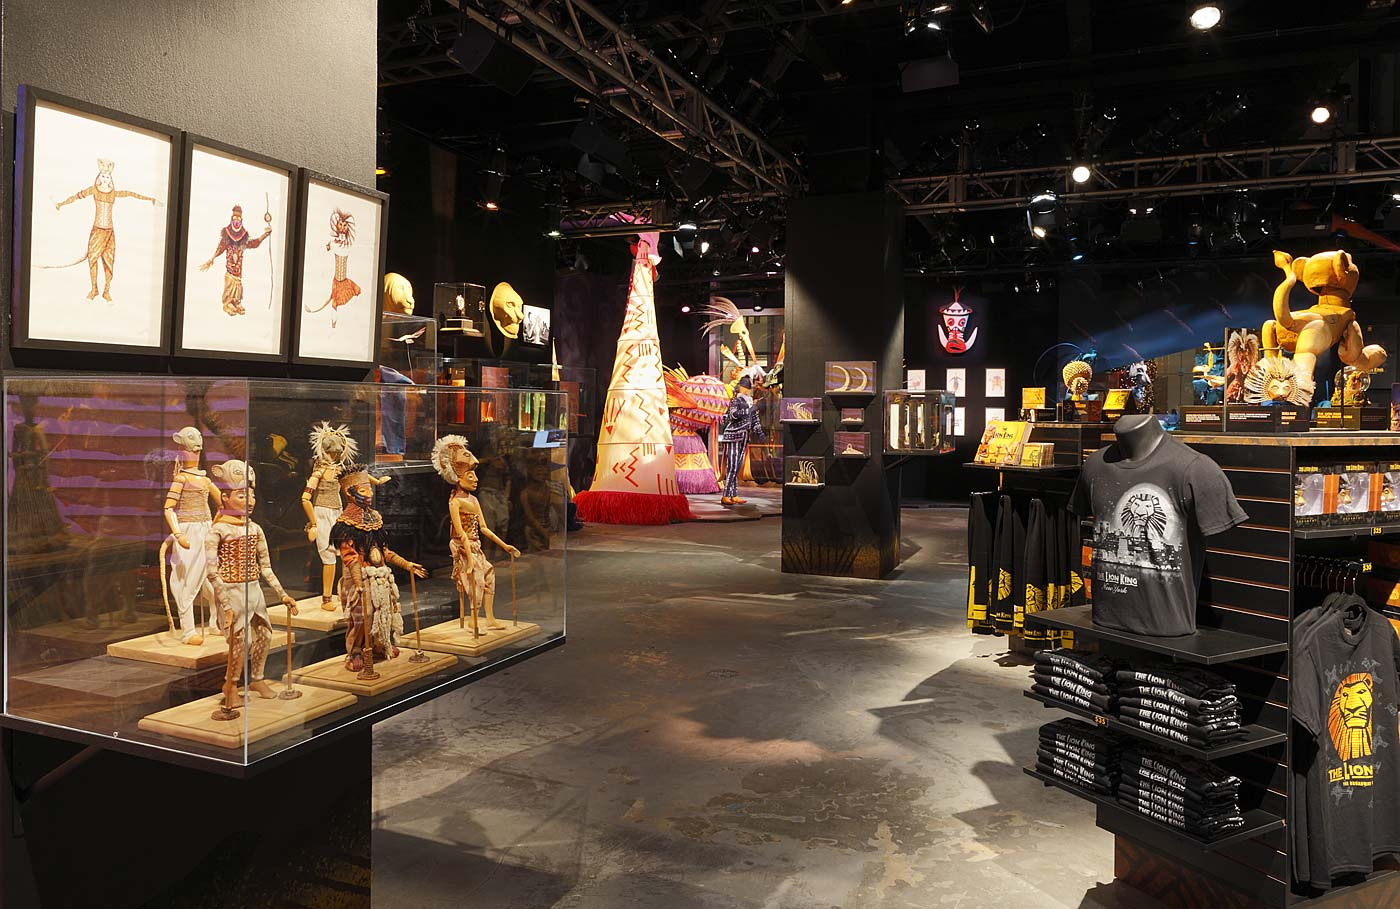 INSIDE THE LION KING EXHIBIT